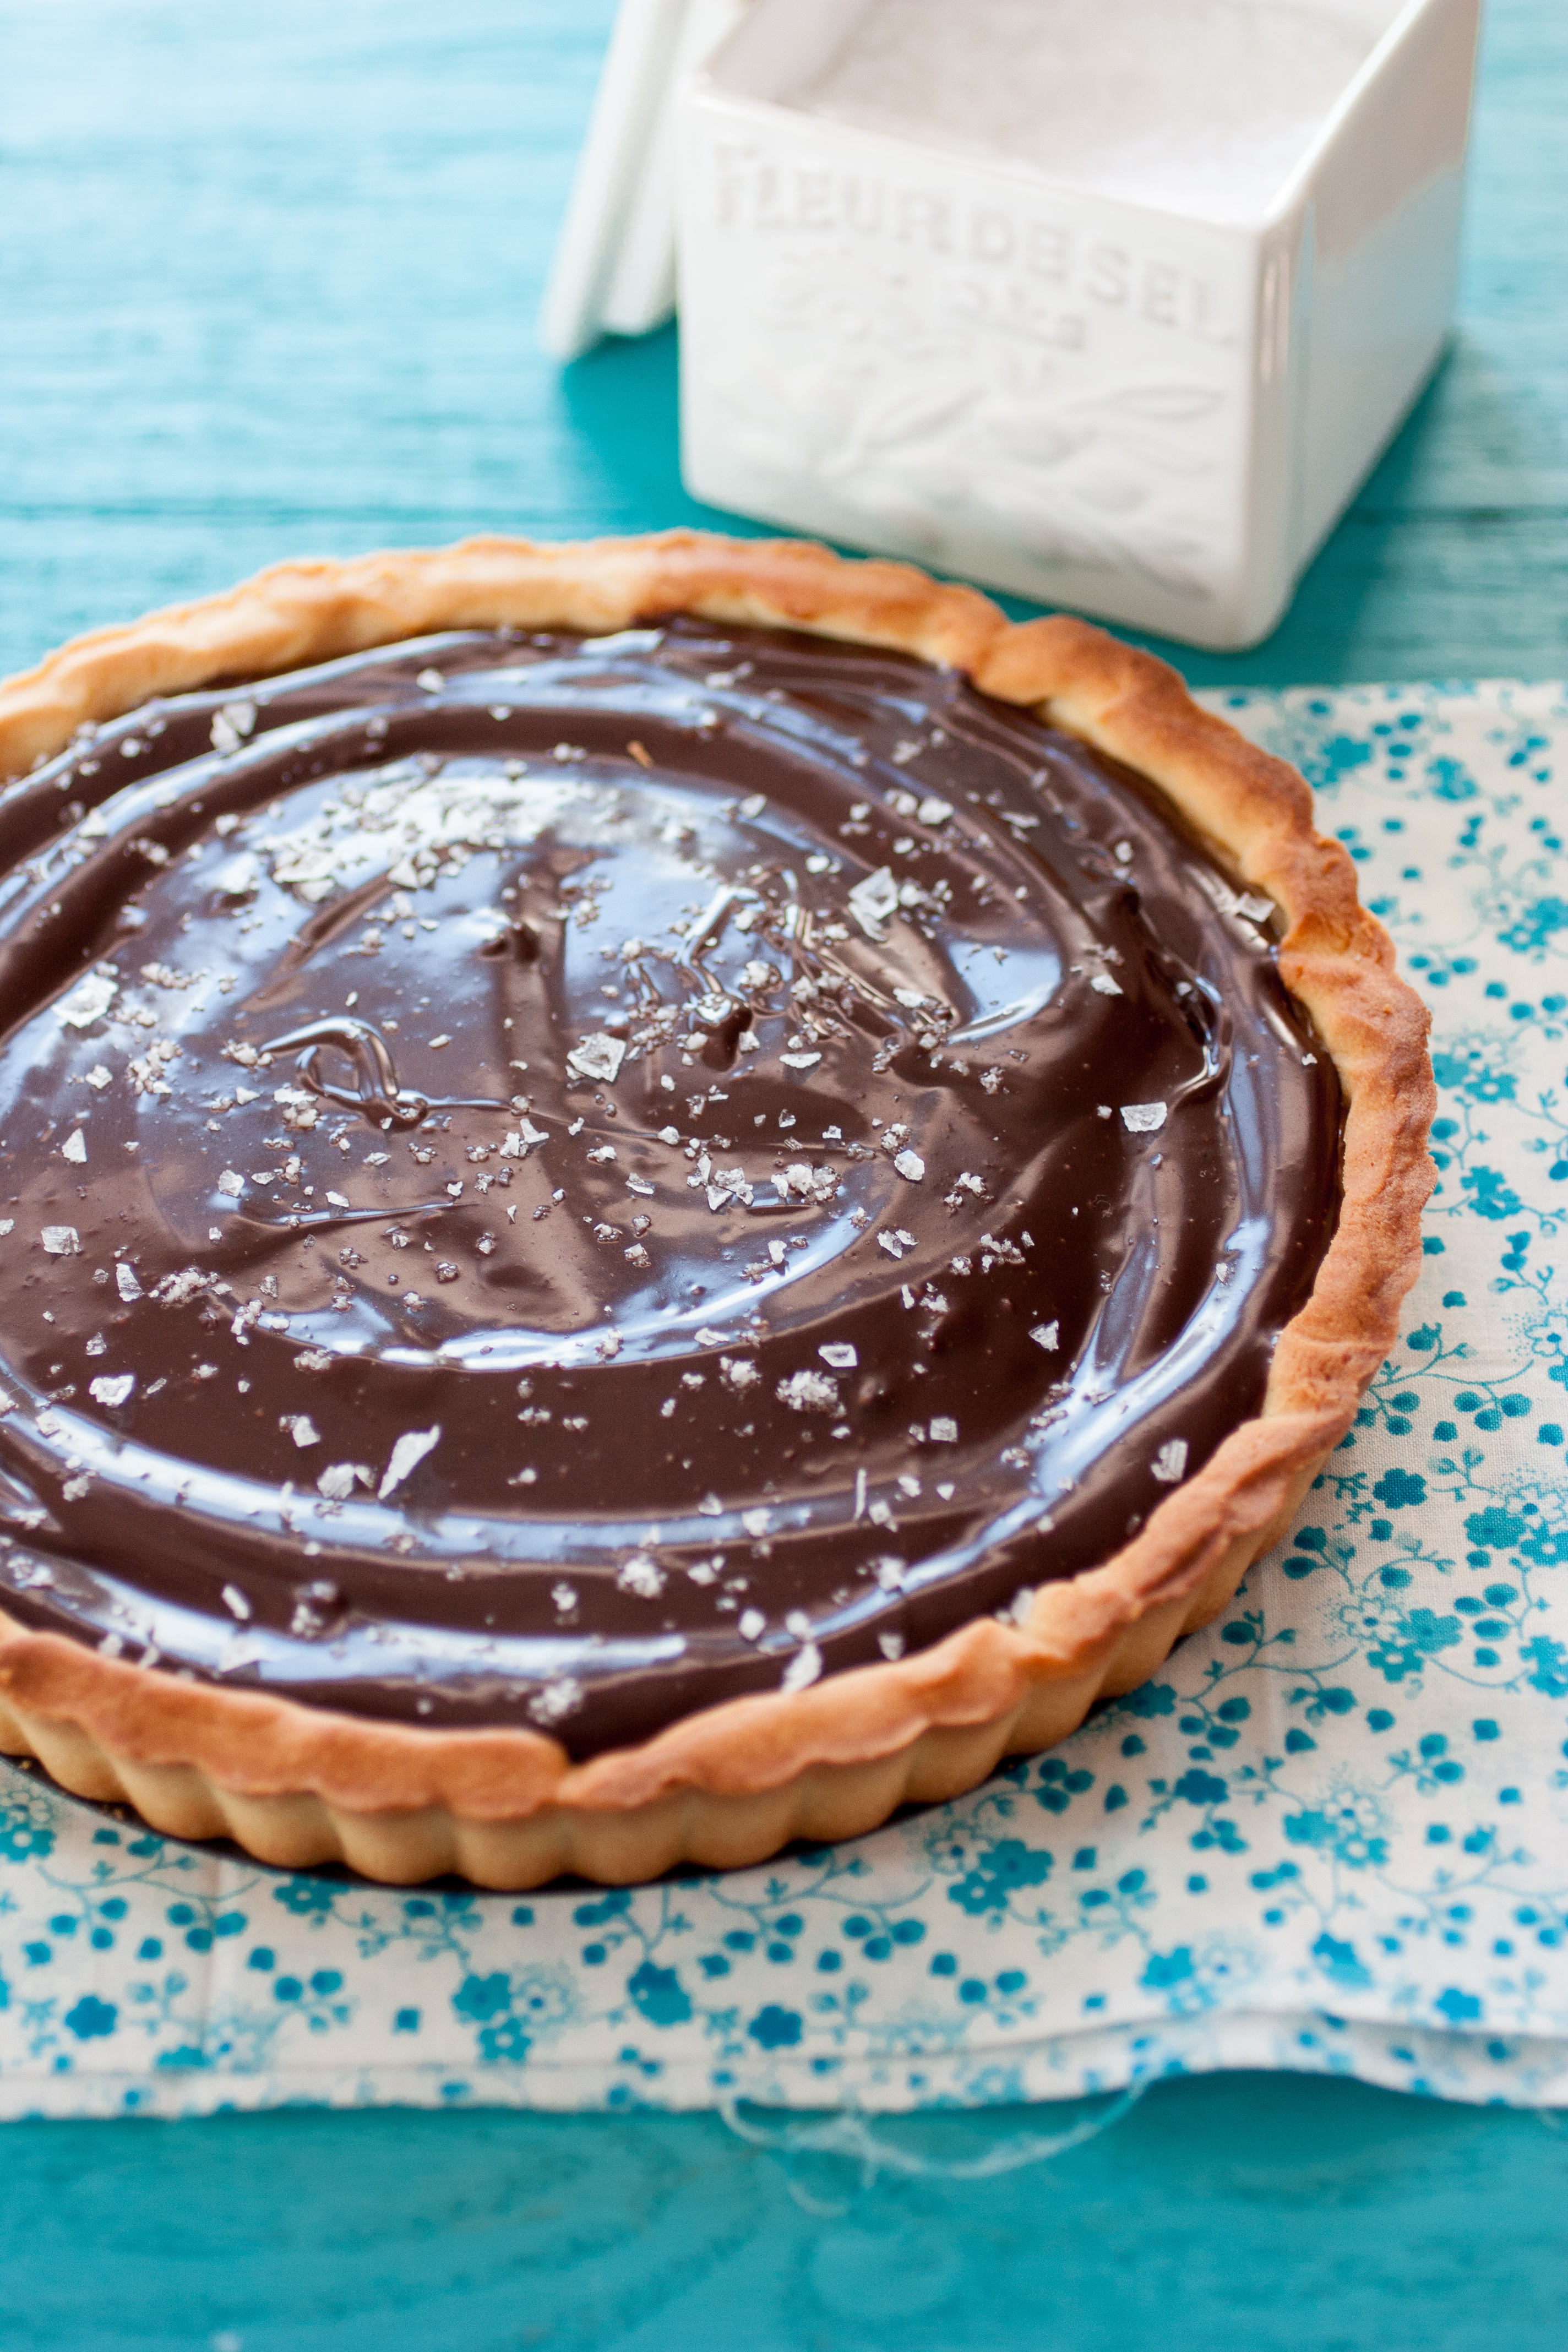 Salted Caramel and Chocolate Tart Recipe